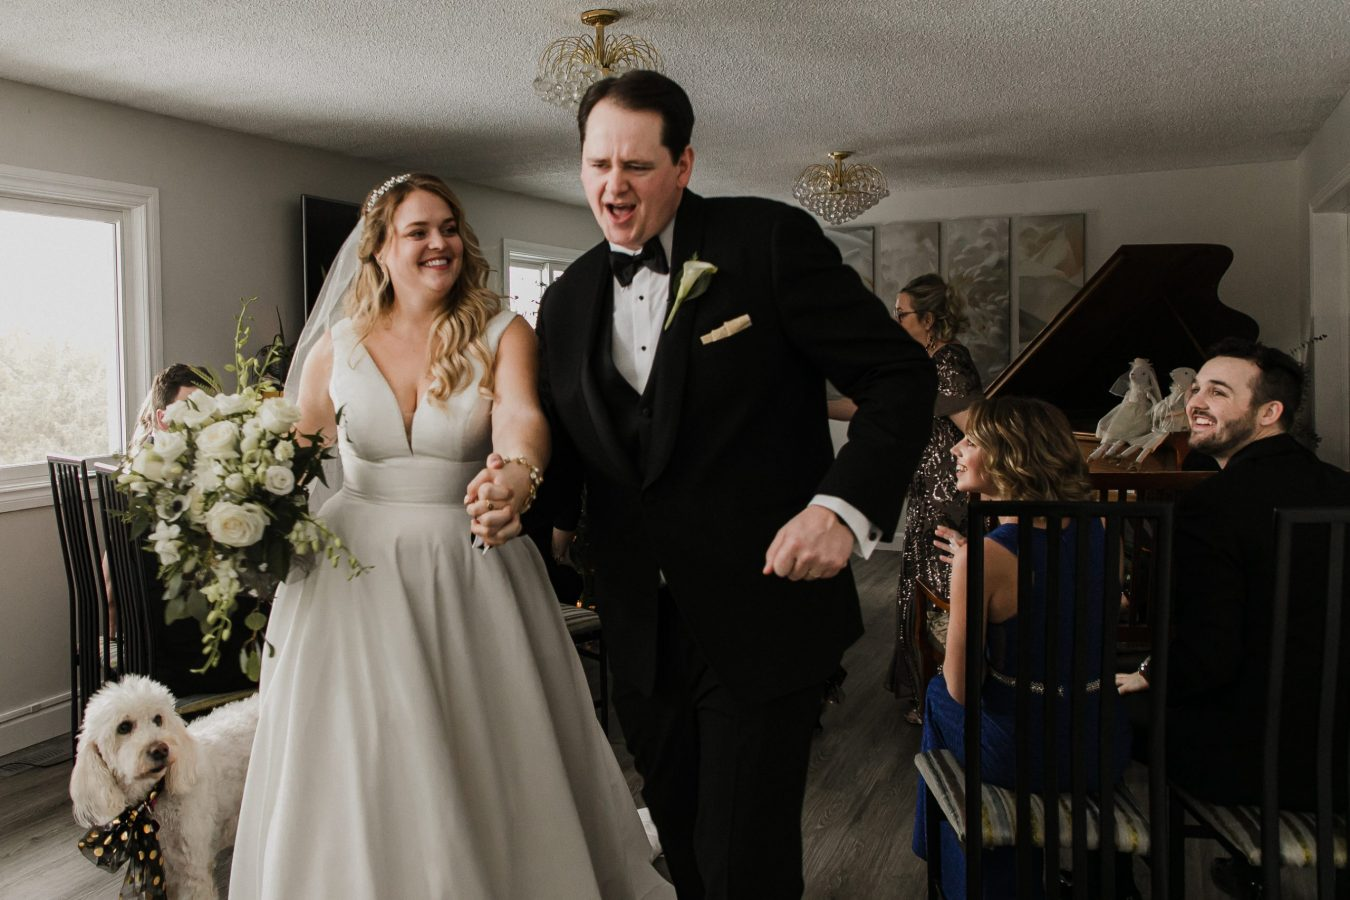 bride and groom dancing down the aisle after getting married at their intimate home wedding